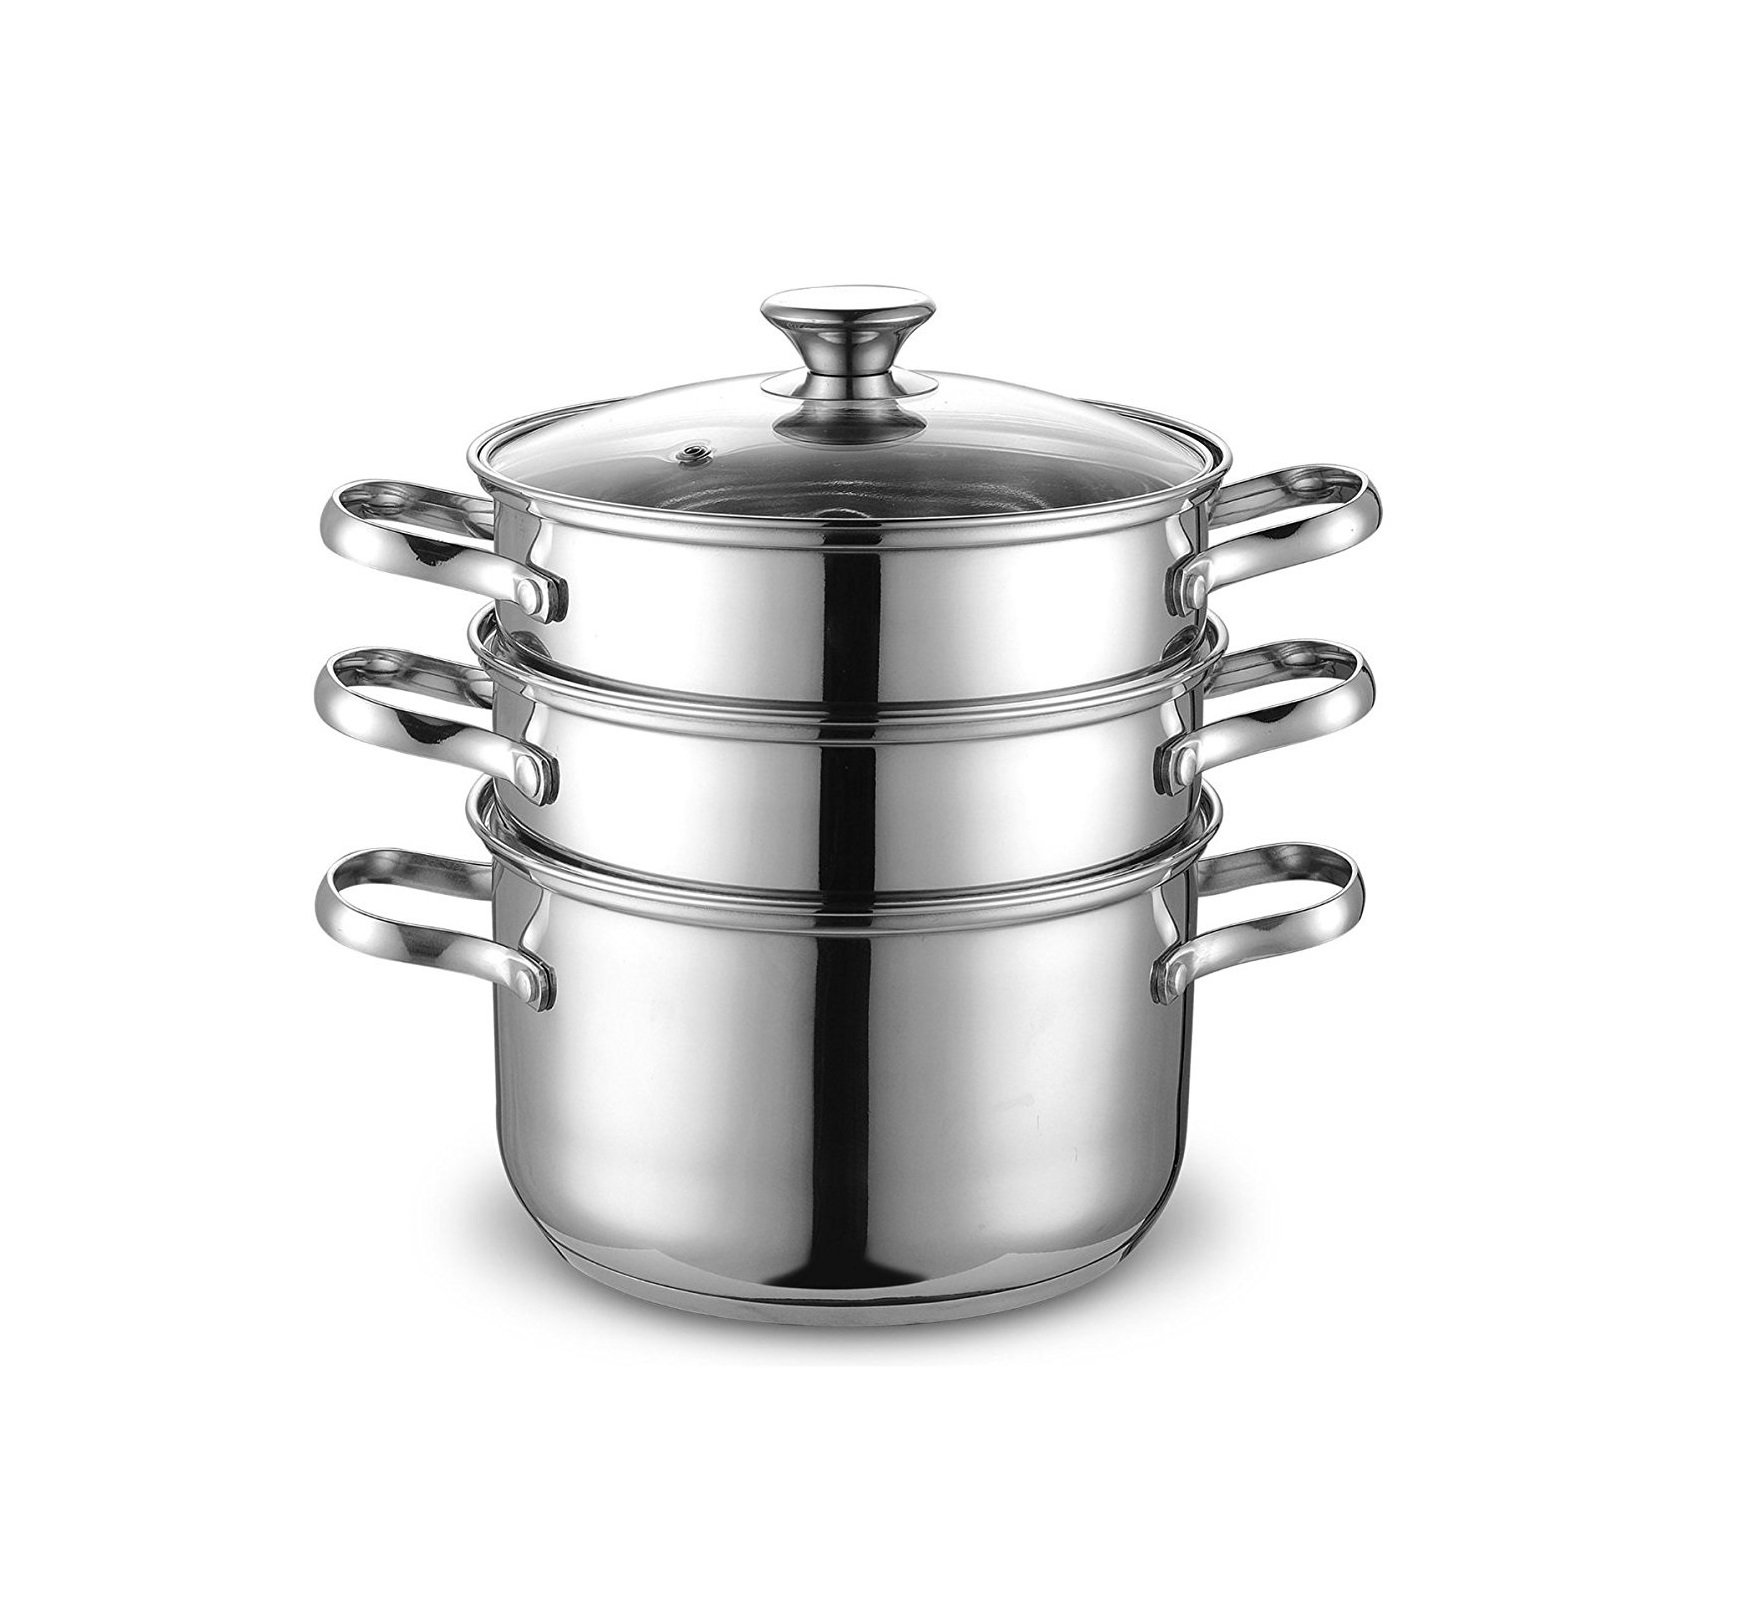 Cook N Home NC-00313 Double Boiler Steamer, 4Qt, silver by Cook N Home